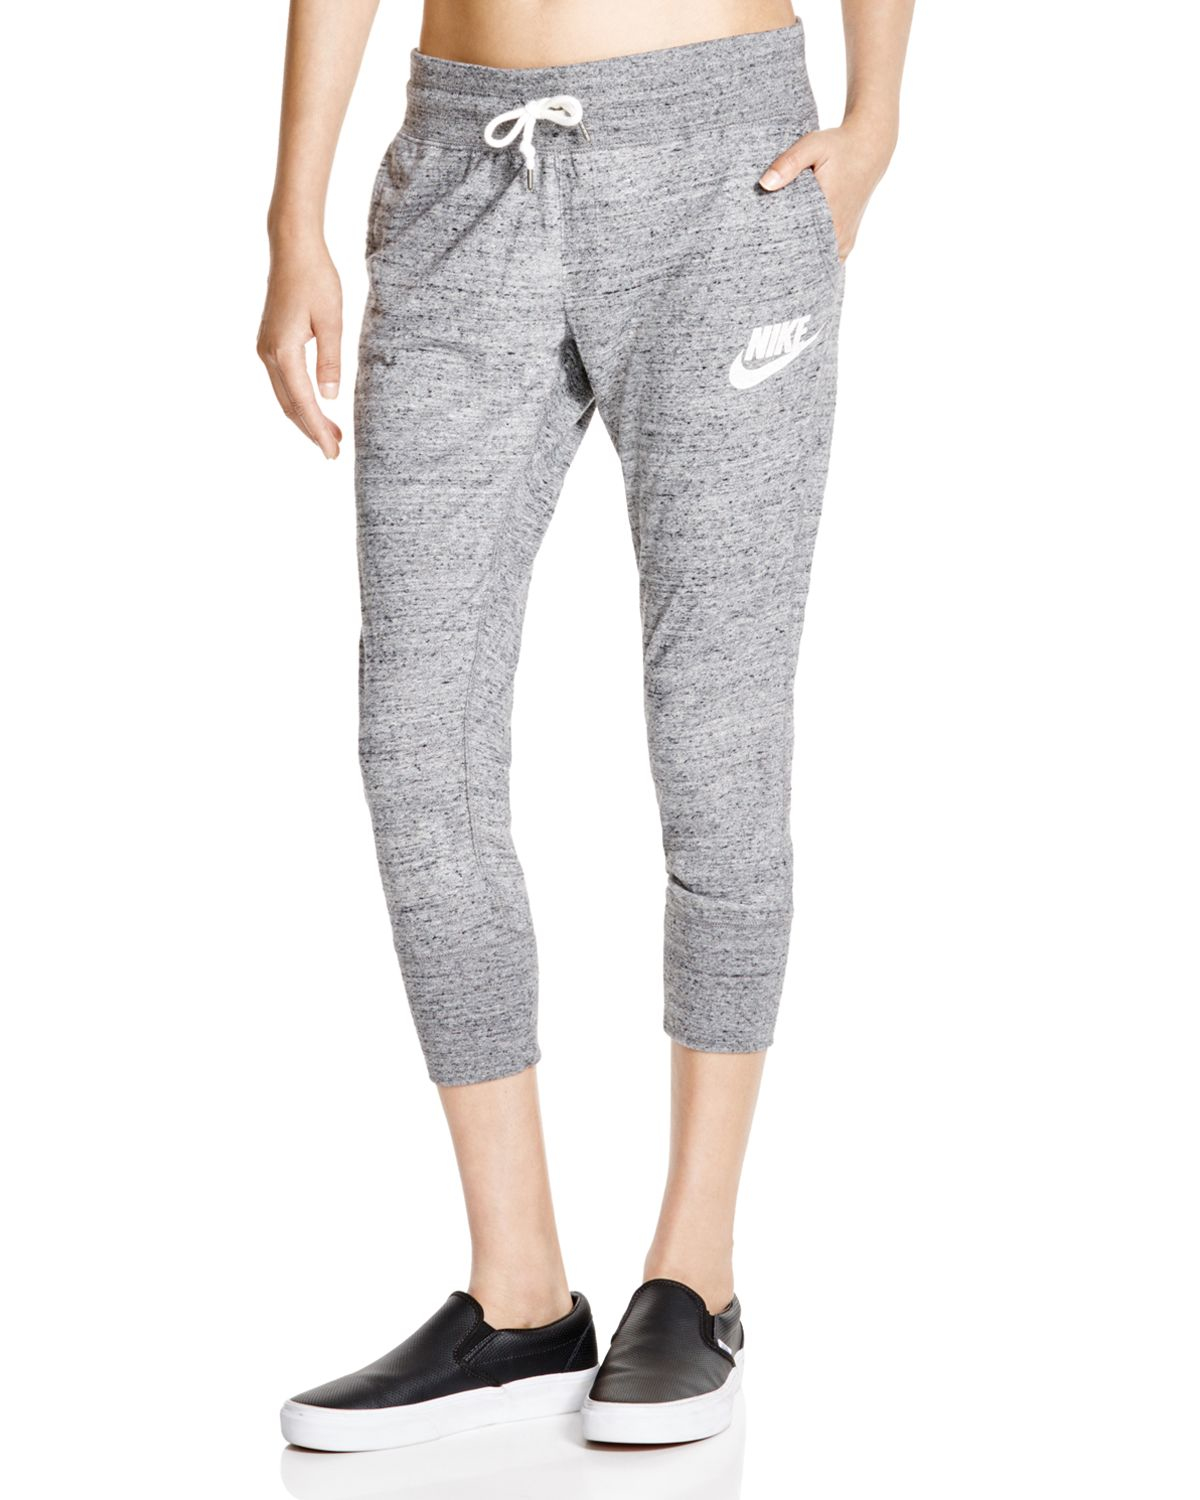 a272075b167d Lyst - Nike Gym Vintage Cropped Sweatpants in Gray